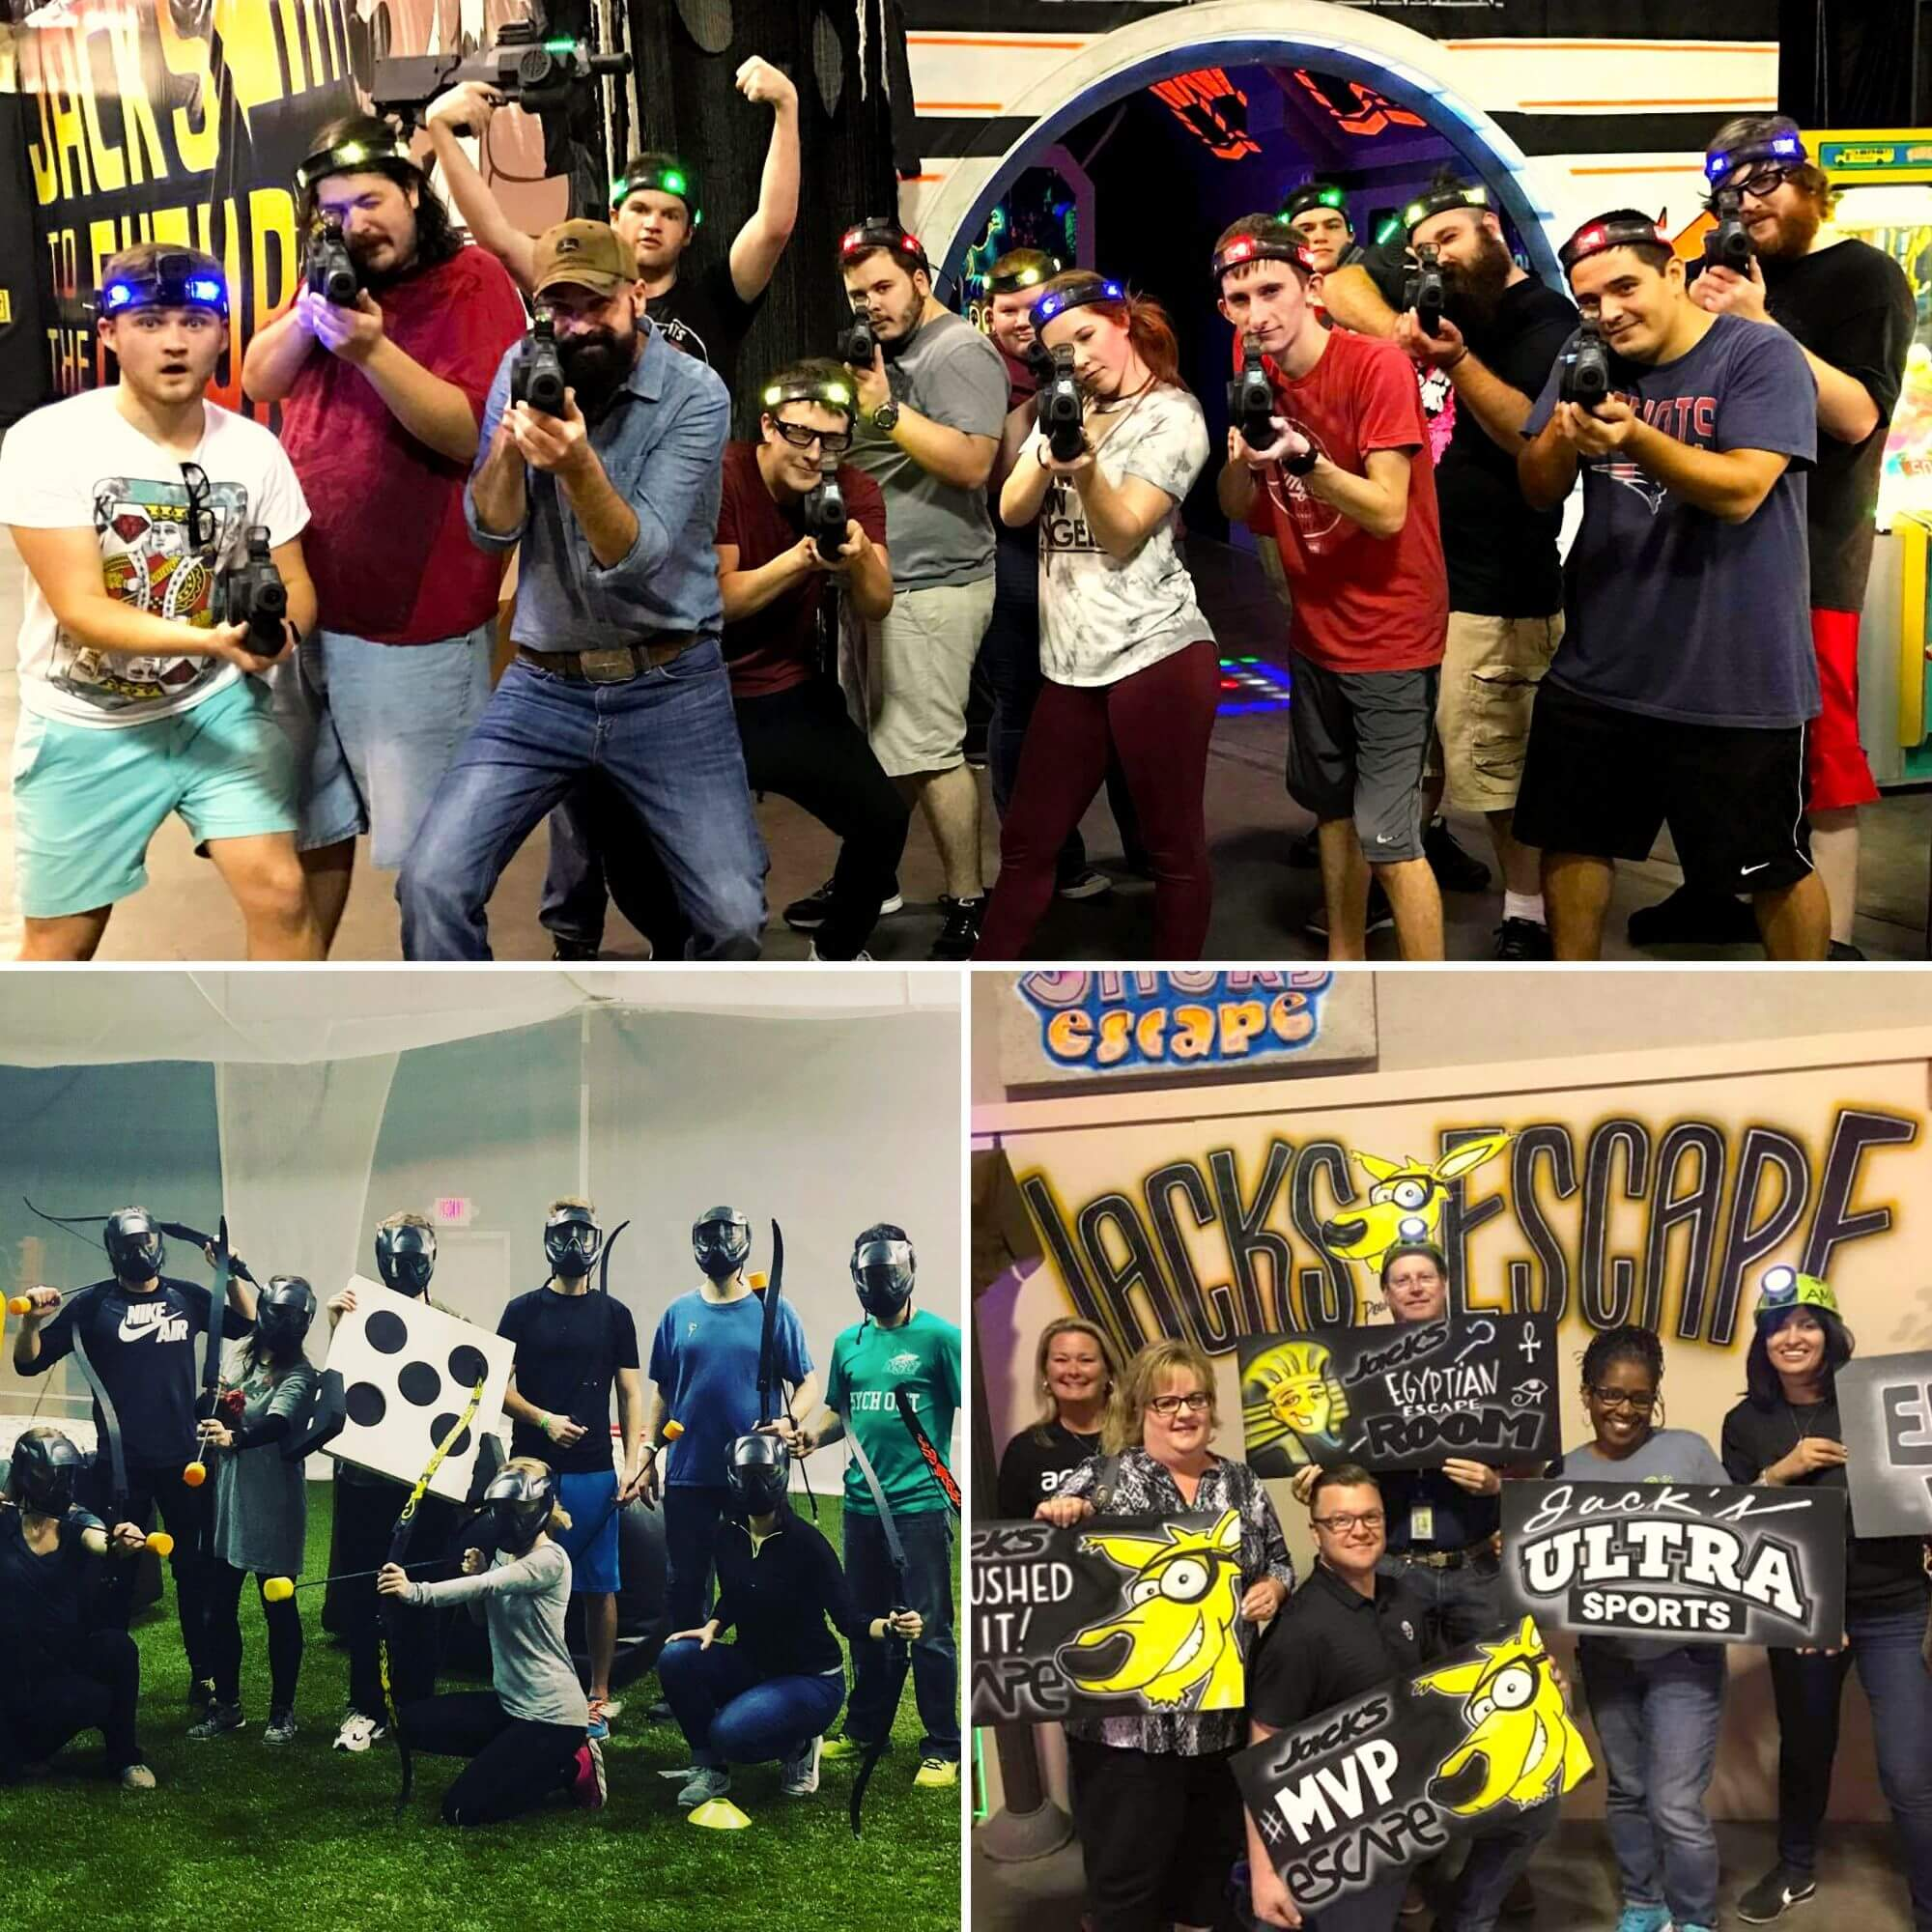 Laser Tag college group, archery warz group, escape room winners